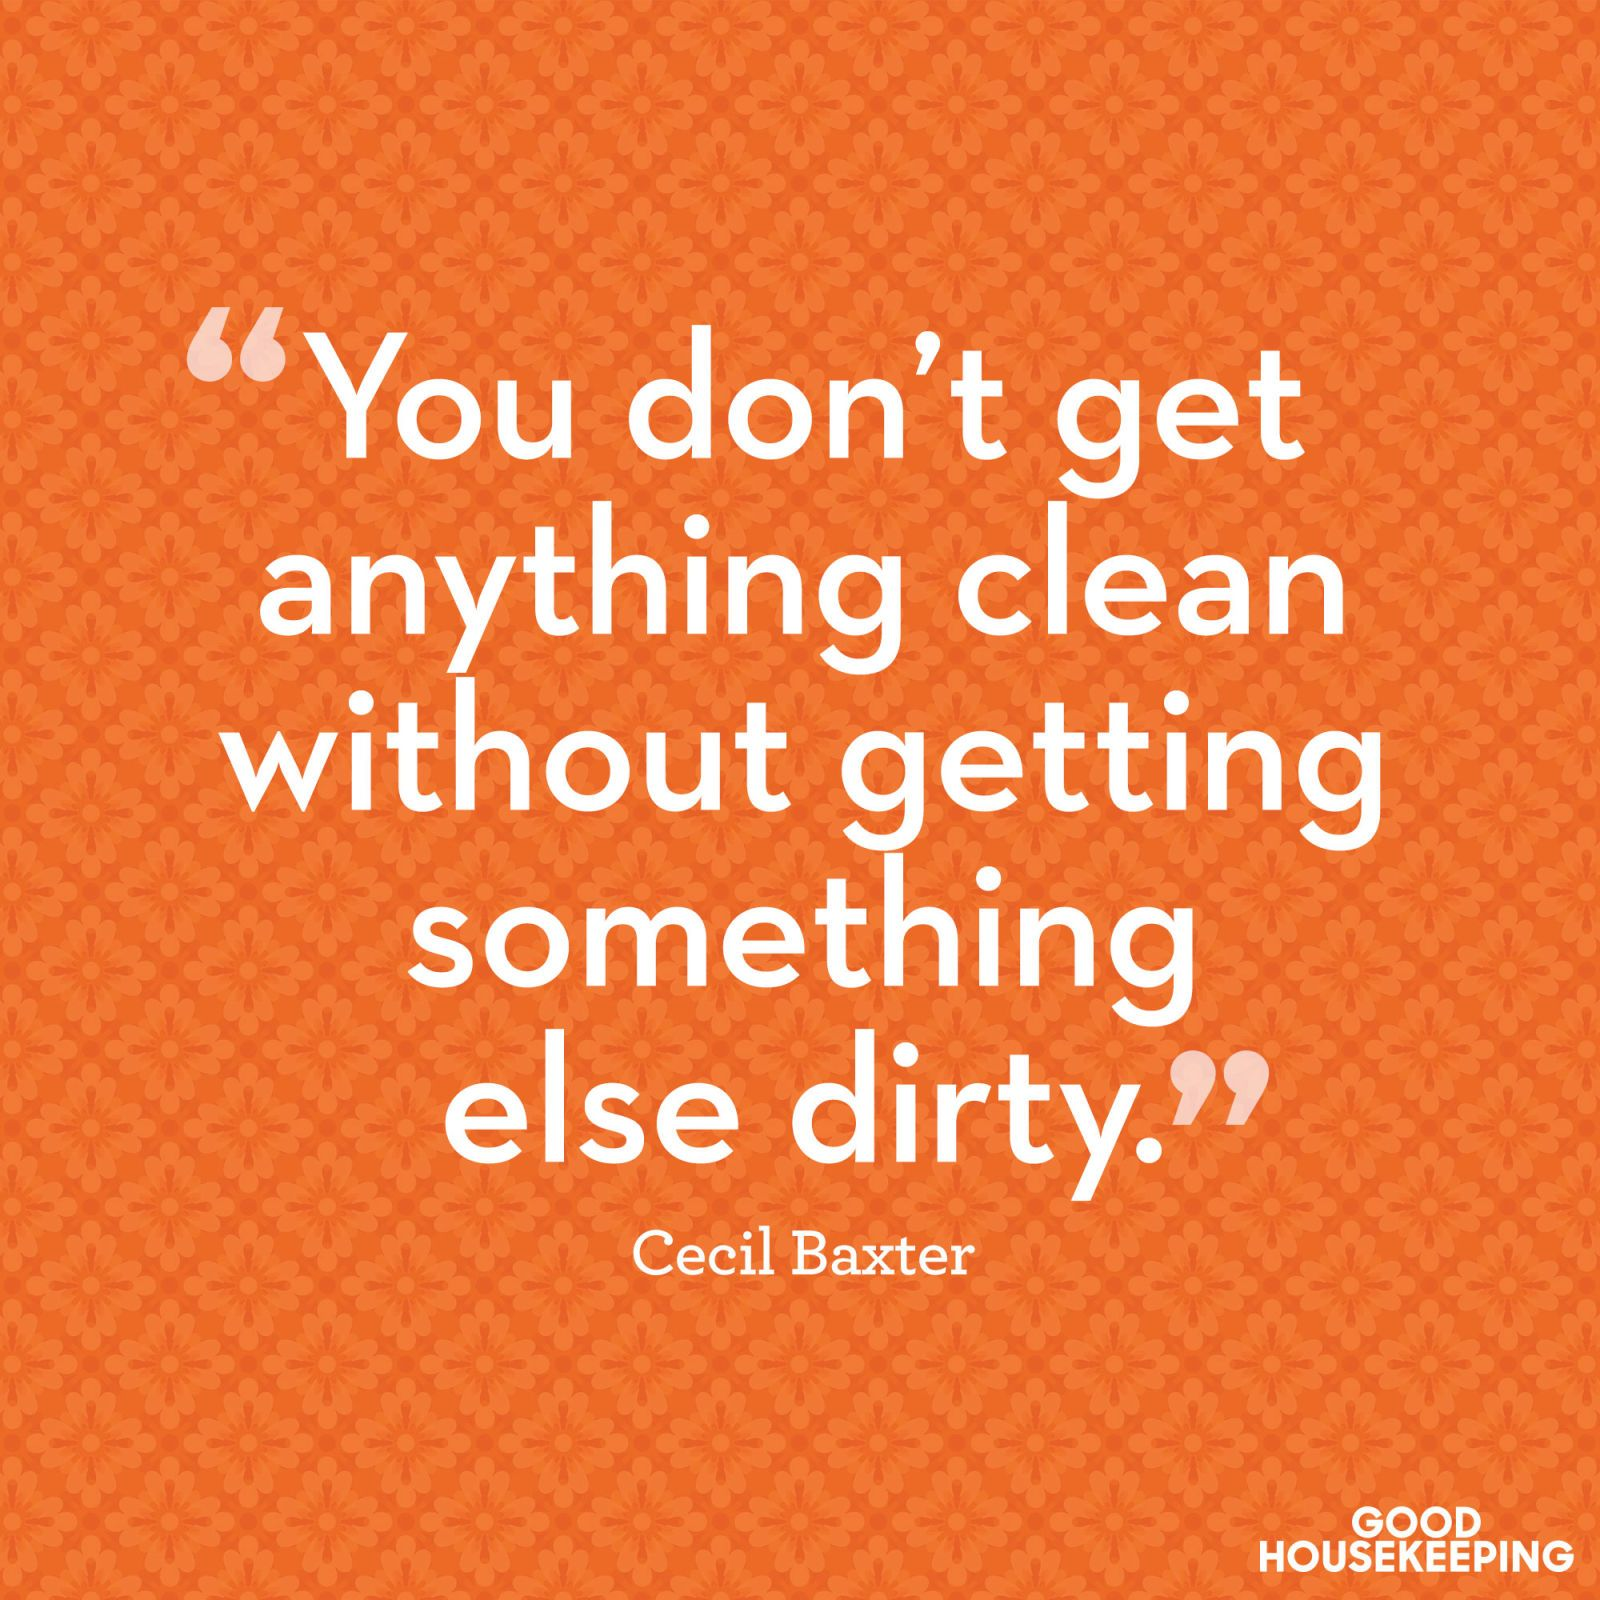 Quotes About Cleaning 11 Hilarious Quotes That Sum Up Exactly How You Feel About